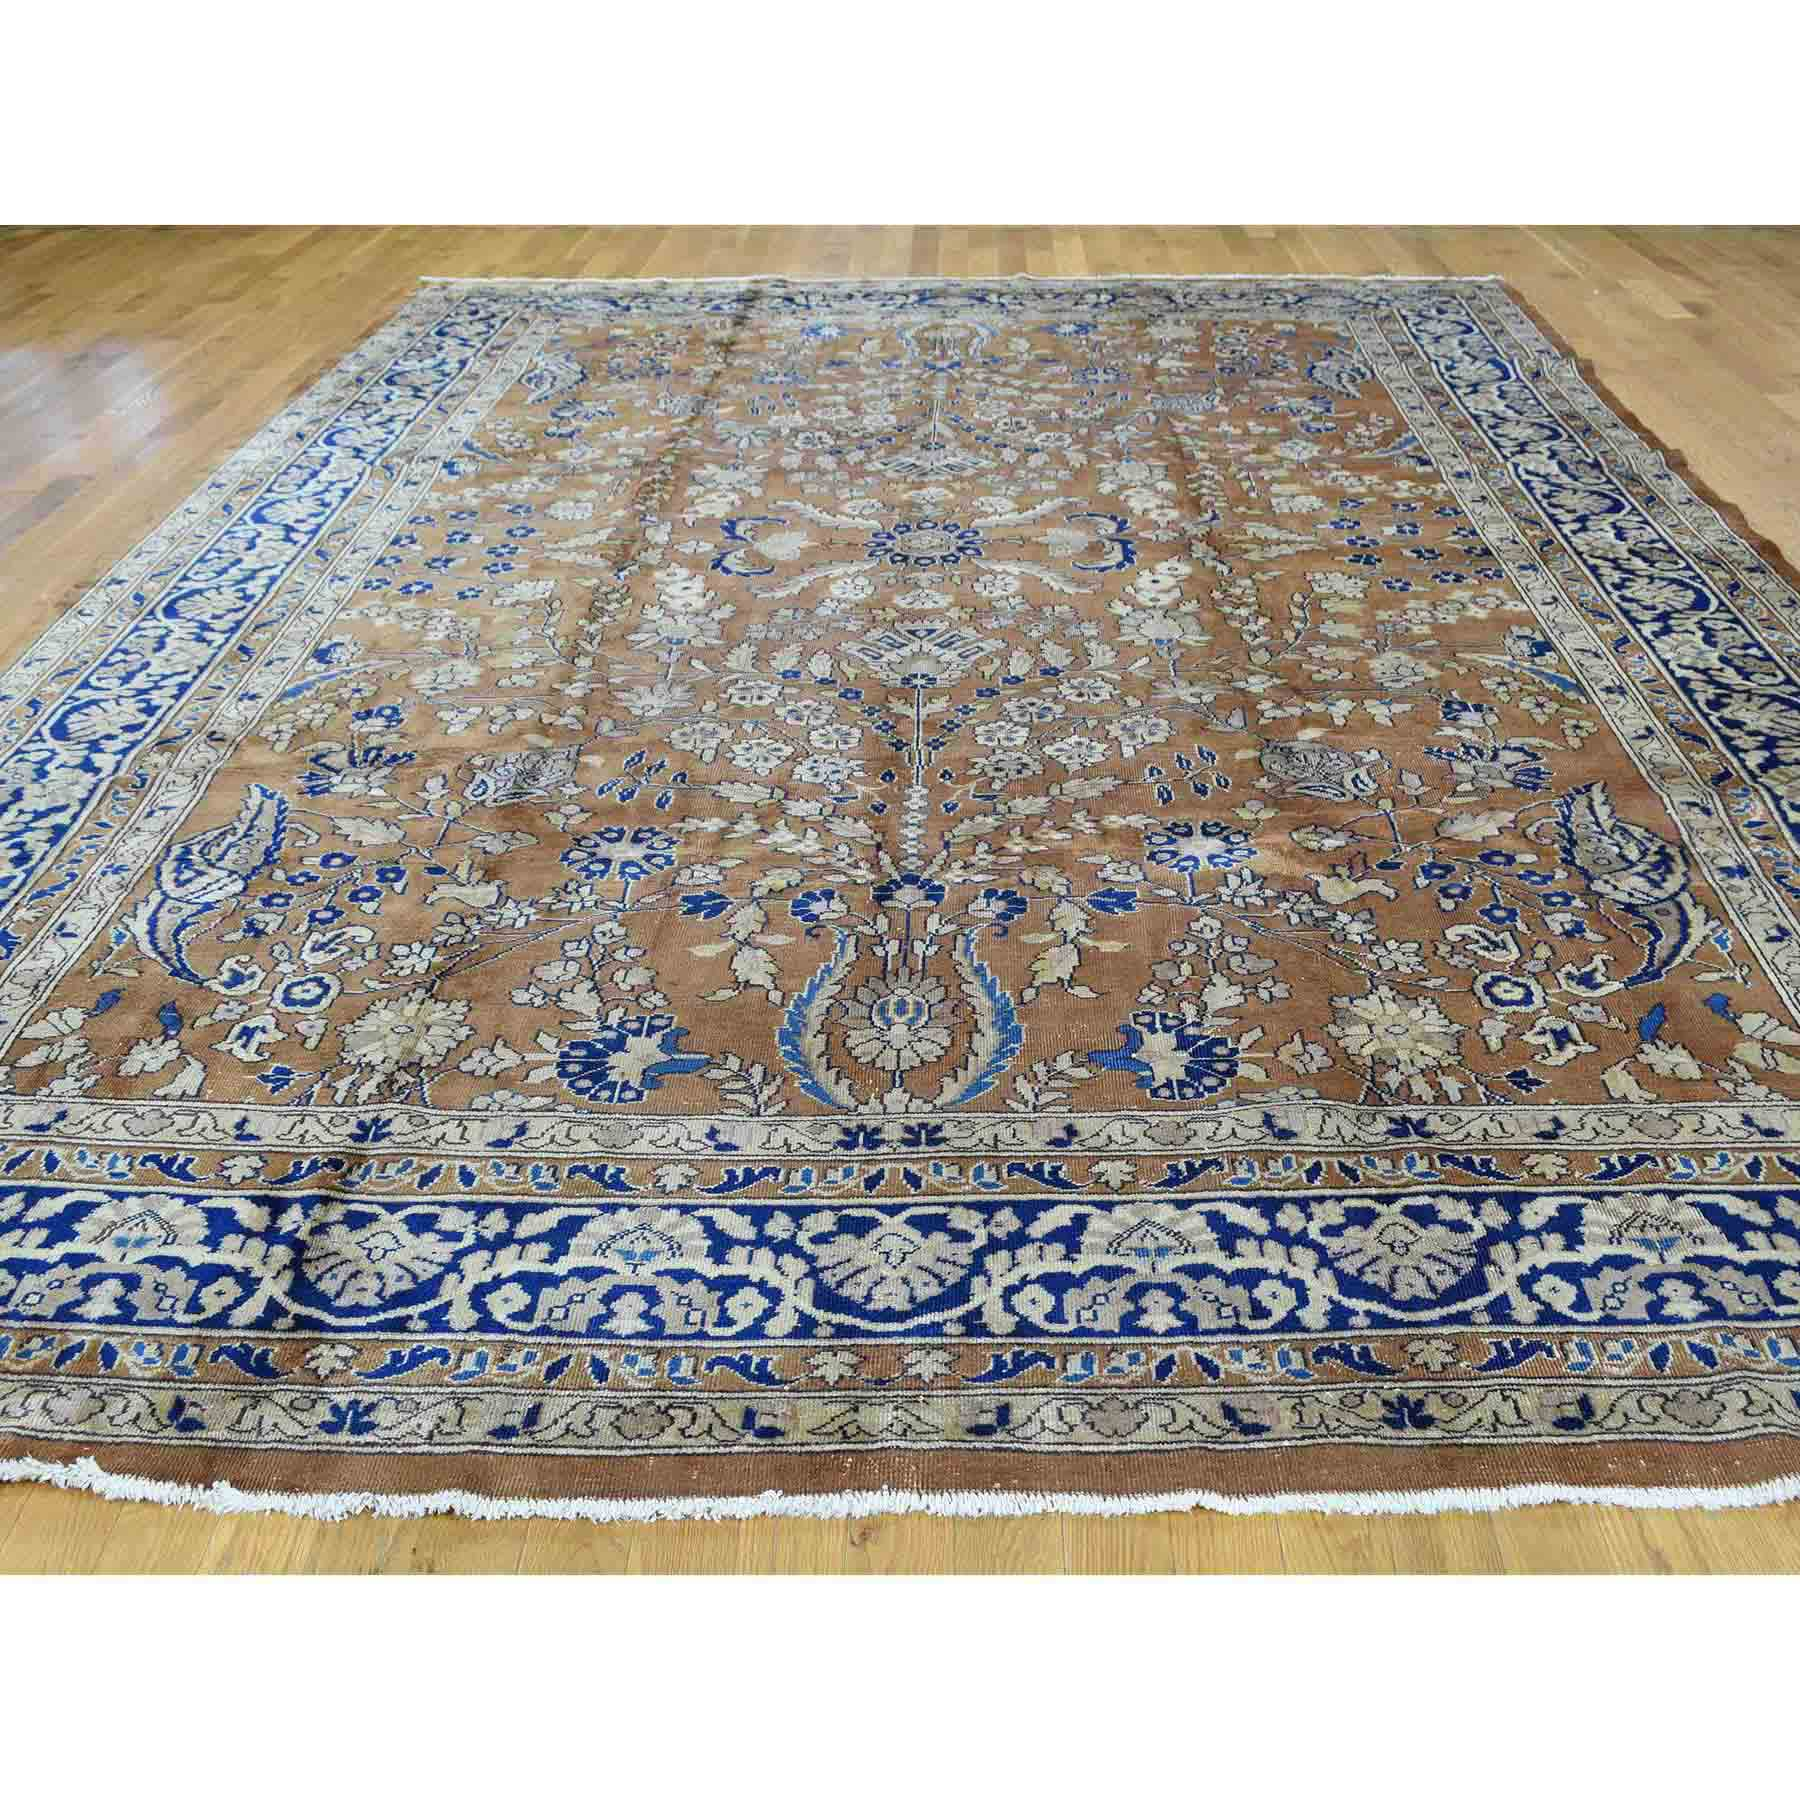 Antique-Hand-Knotted-Rug-167920